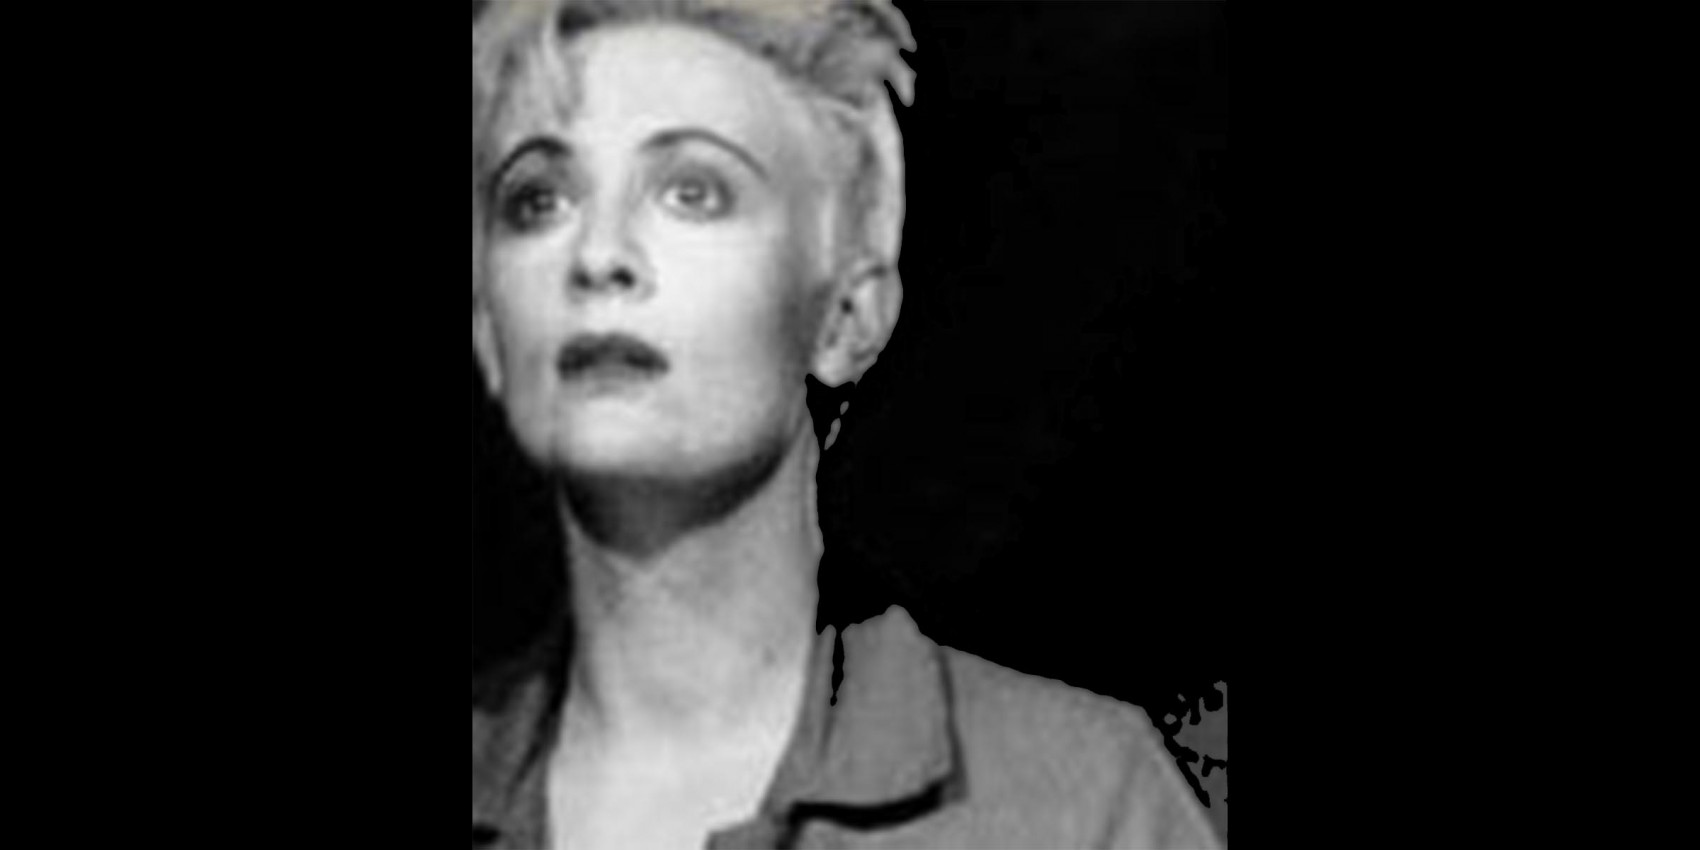 Head and shoulder shot of a woman with short hair gazing out to the distance